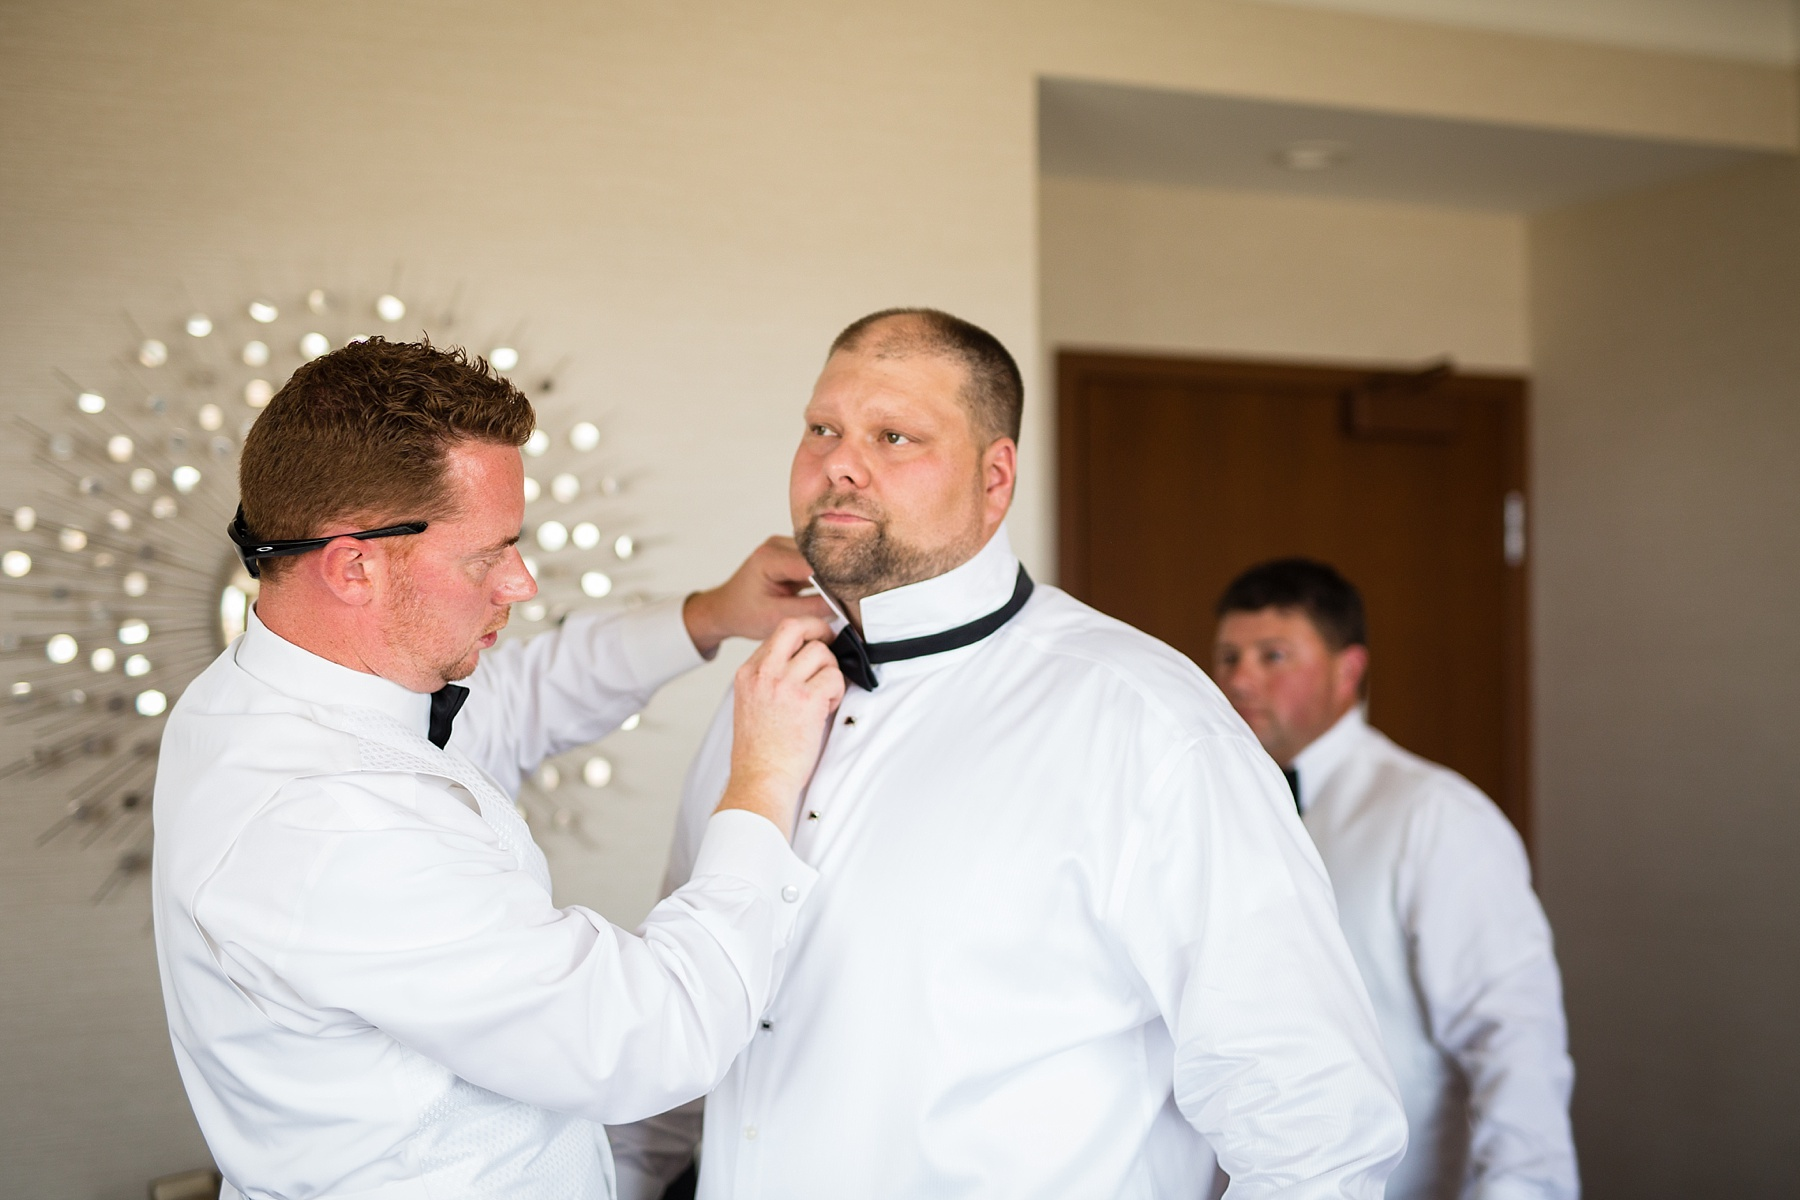 Brandon_Shafer_Photography_Brad_Sarah_Downtown_Grand_Rapids_Wedding_0016.jpg